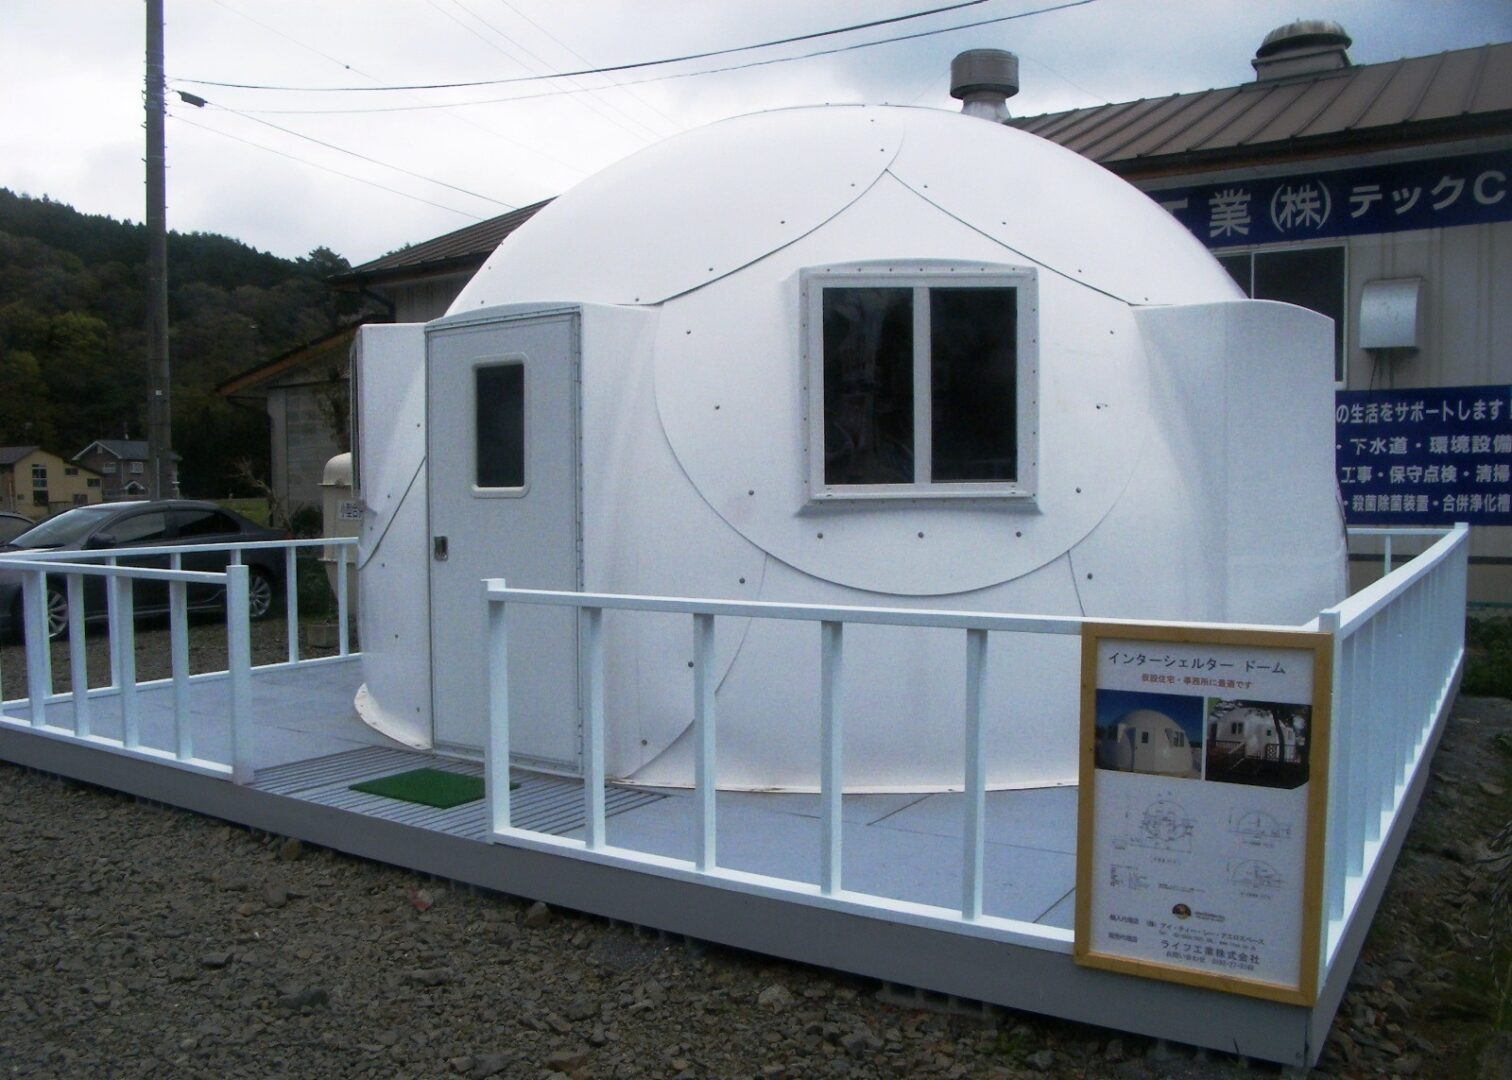 Tiny house or safety shelter with windows and fencing from InterShelter Inc.